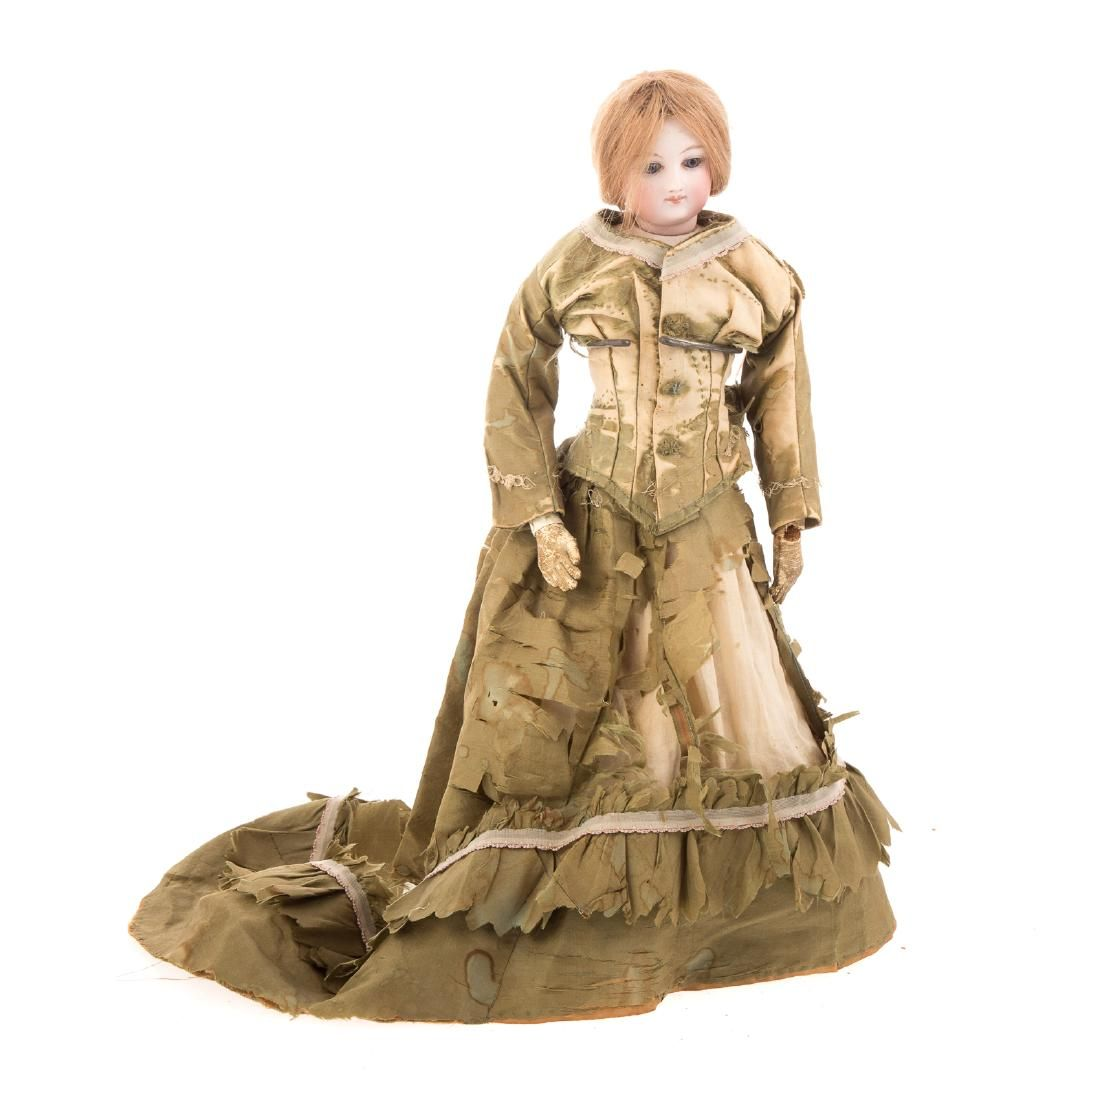 French bisque and kid body fashion doll